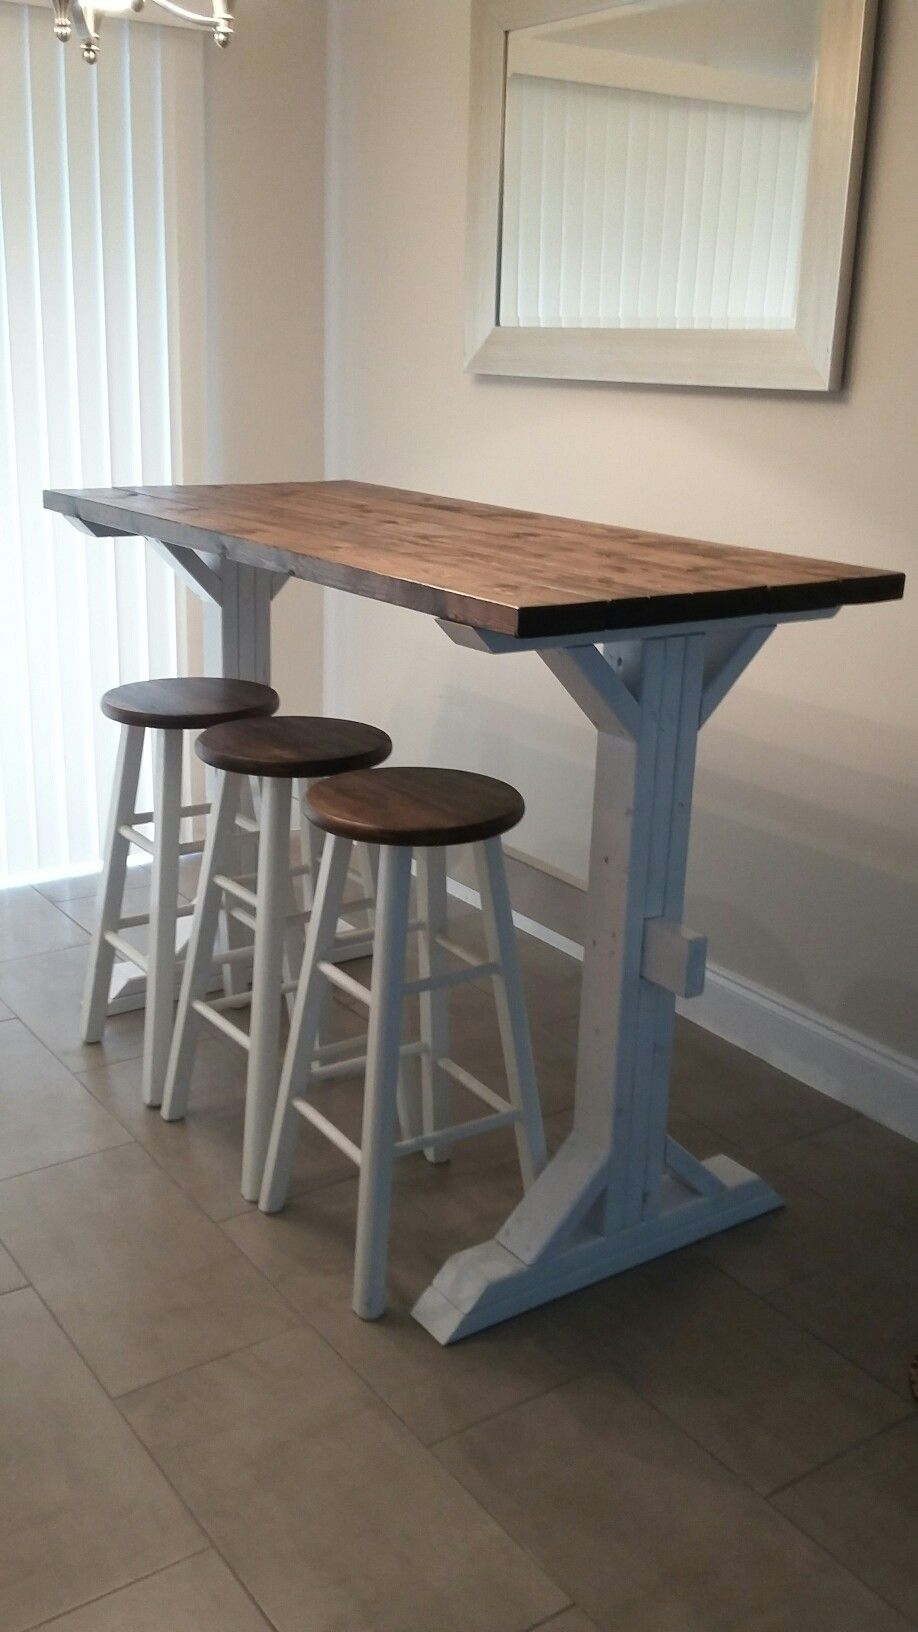 Farmhouse Style Bar Height Table